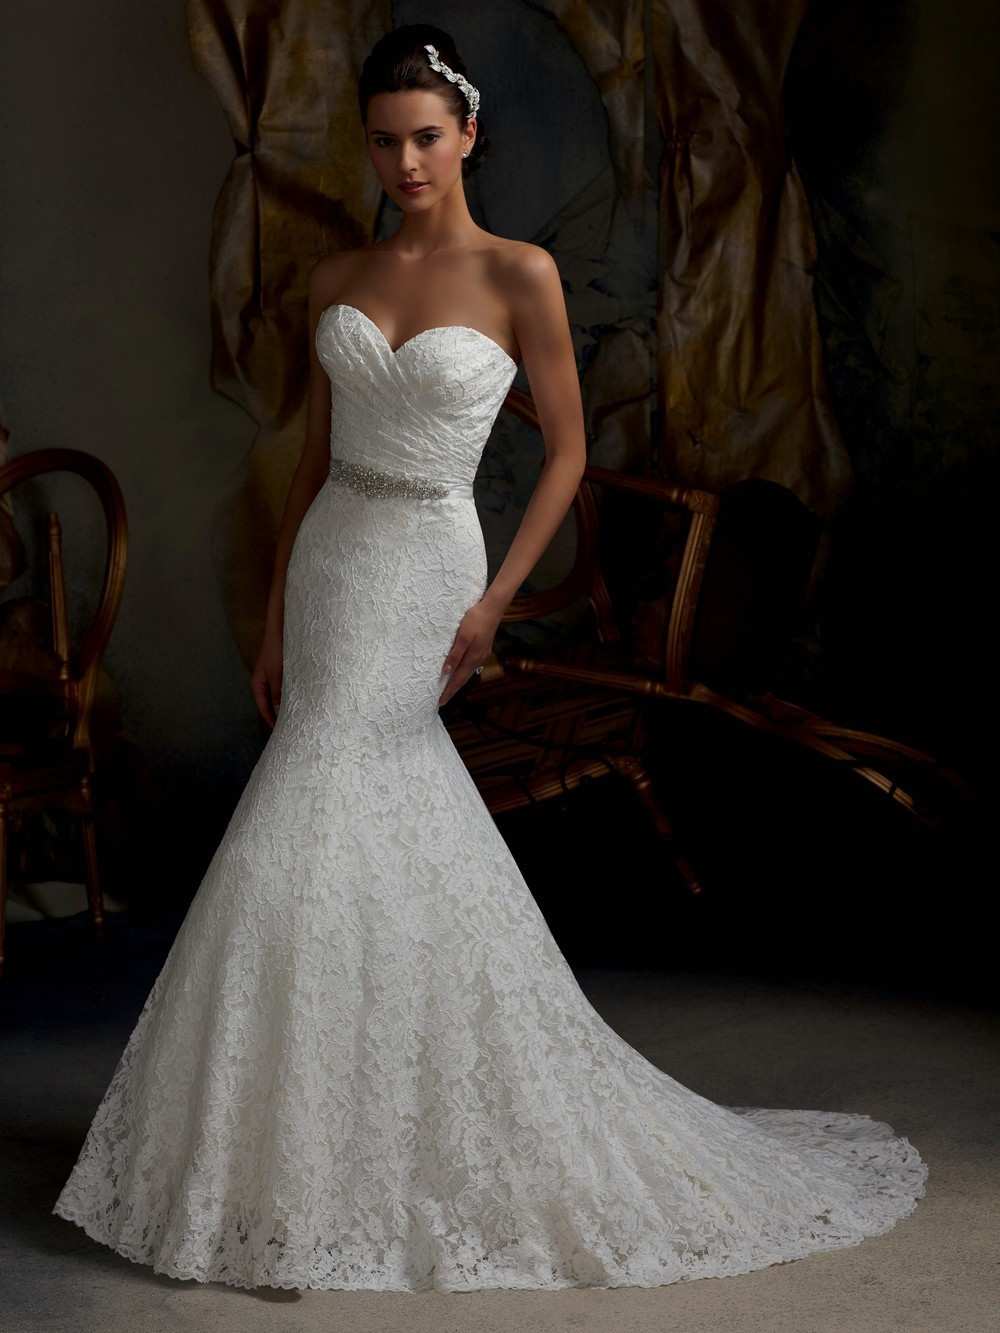 2013 Hot On Sale Custom Made Strapless Sweetheart Lace Bling Beading Front Split Mermaid Bridal Wedding Dress Wedding Gown